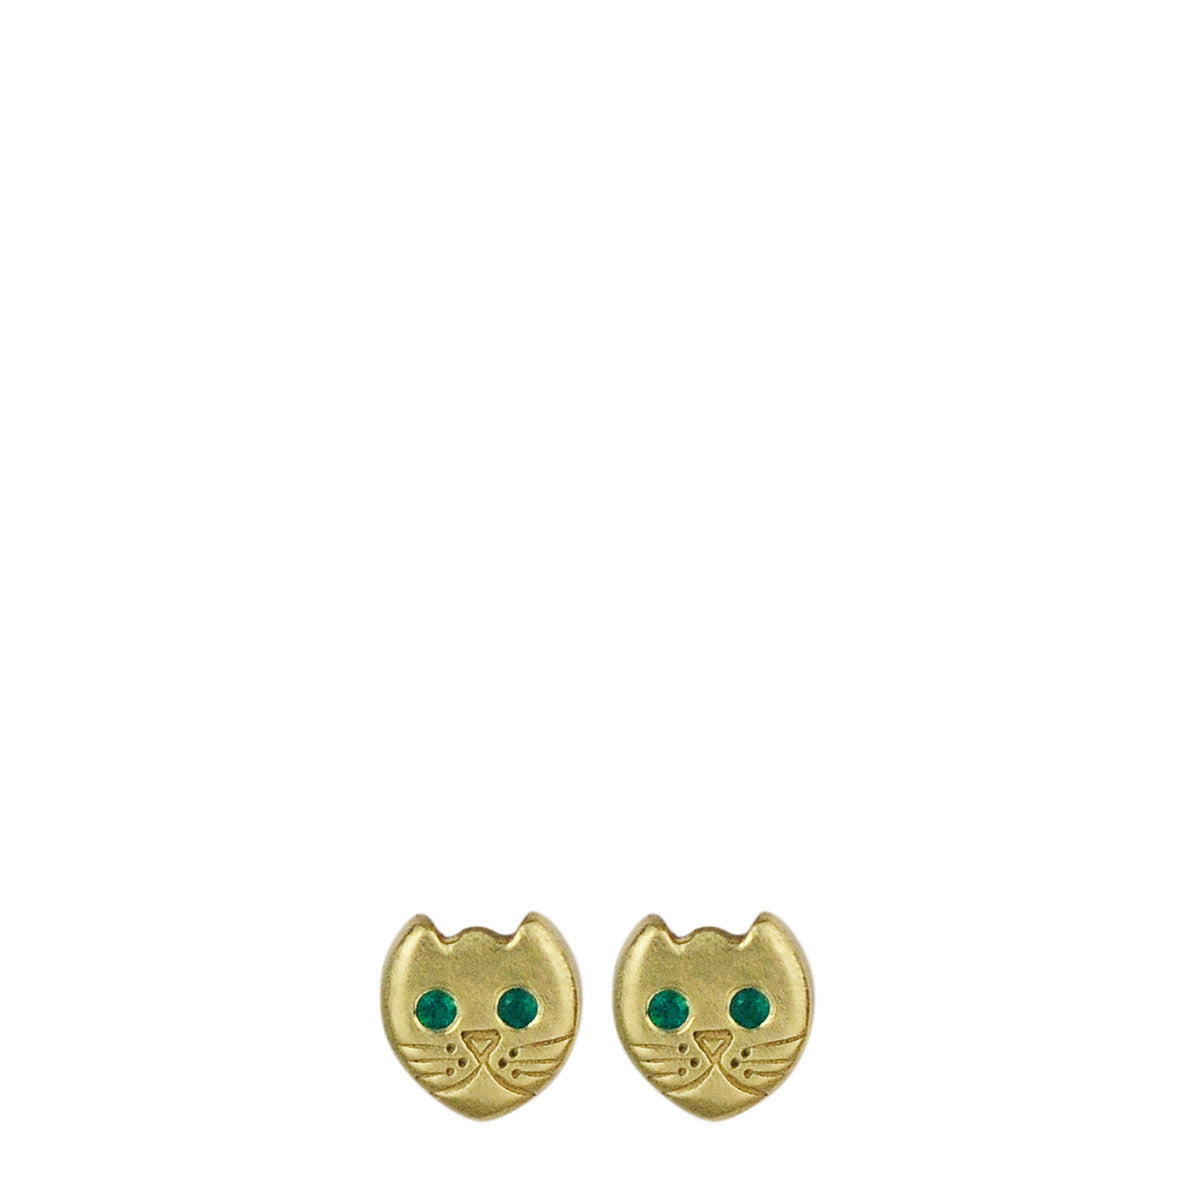 18K Gold Tiny Kitten Stud Earrings with Emerald Eyes